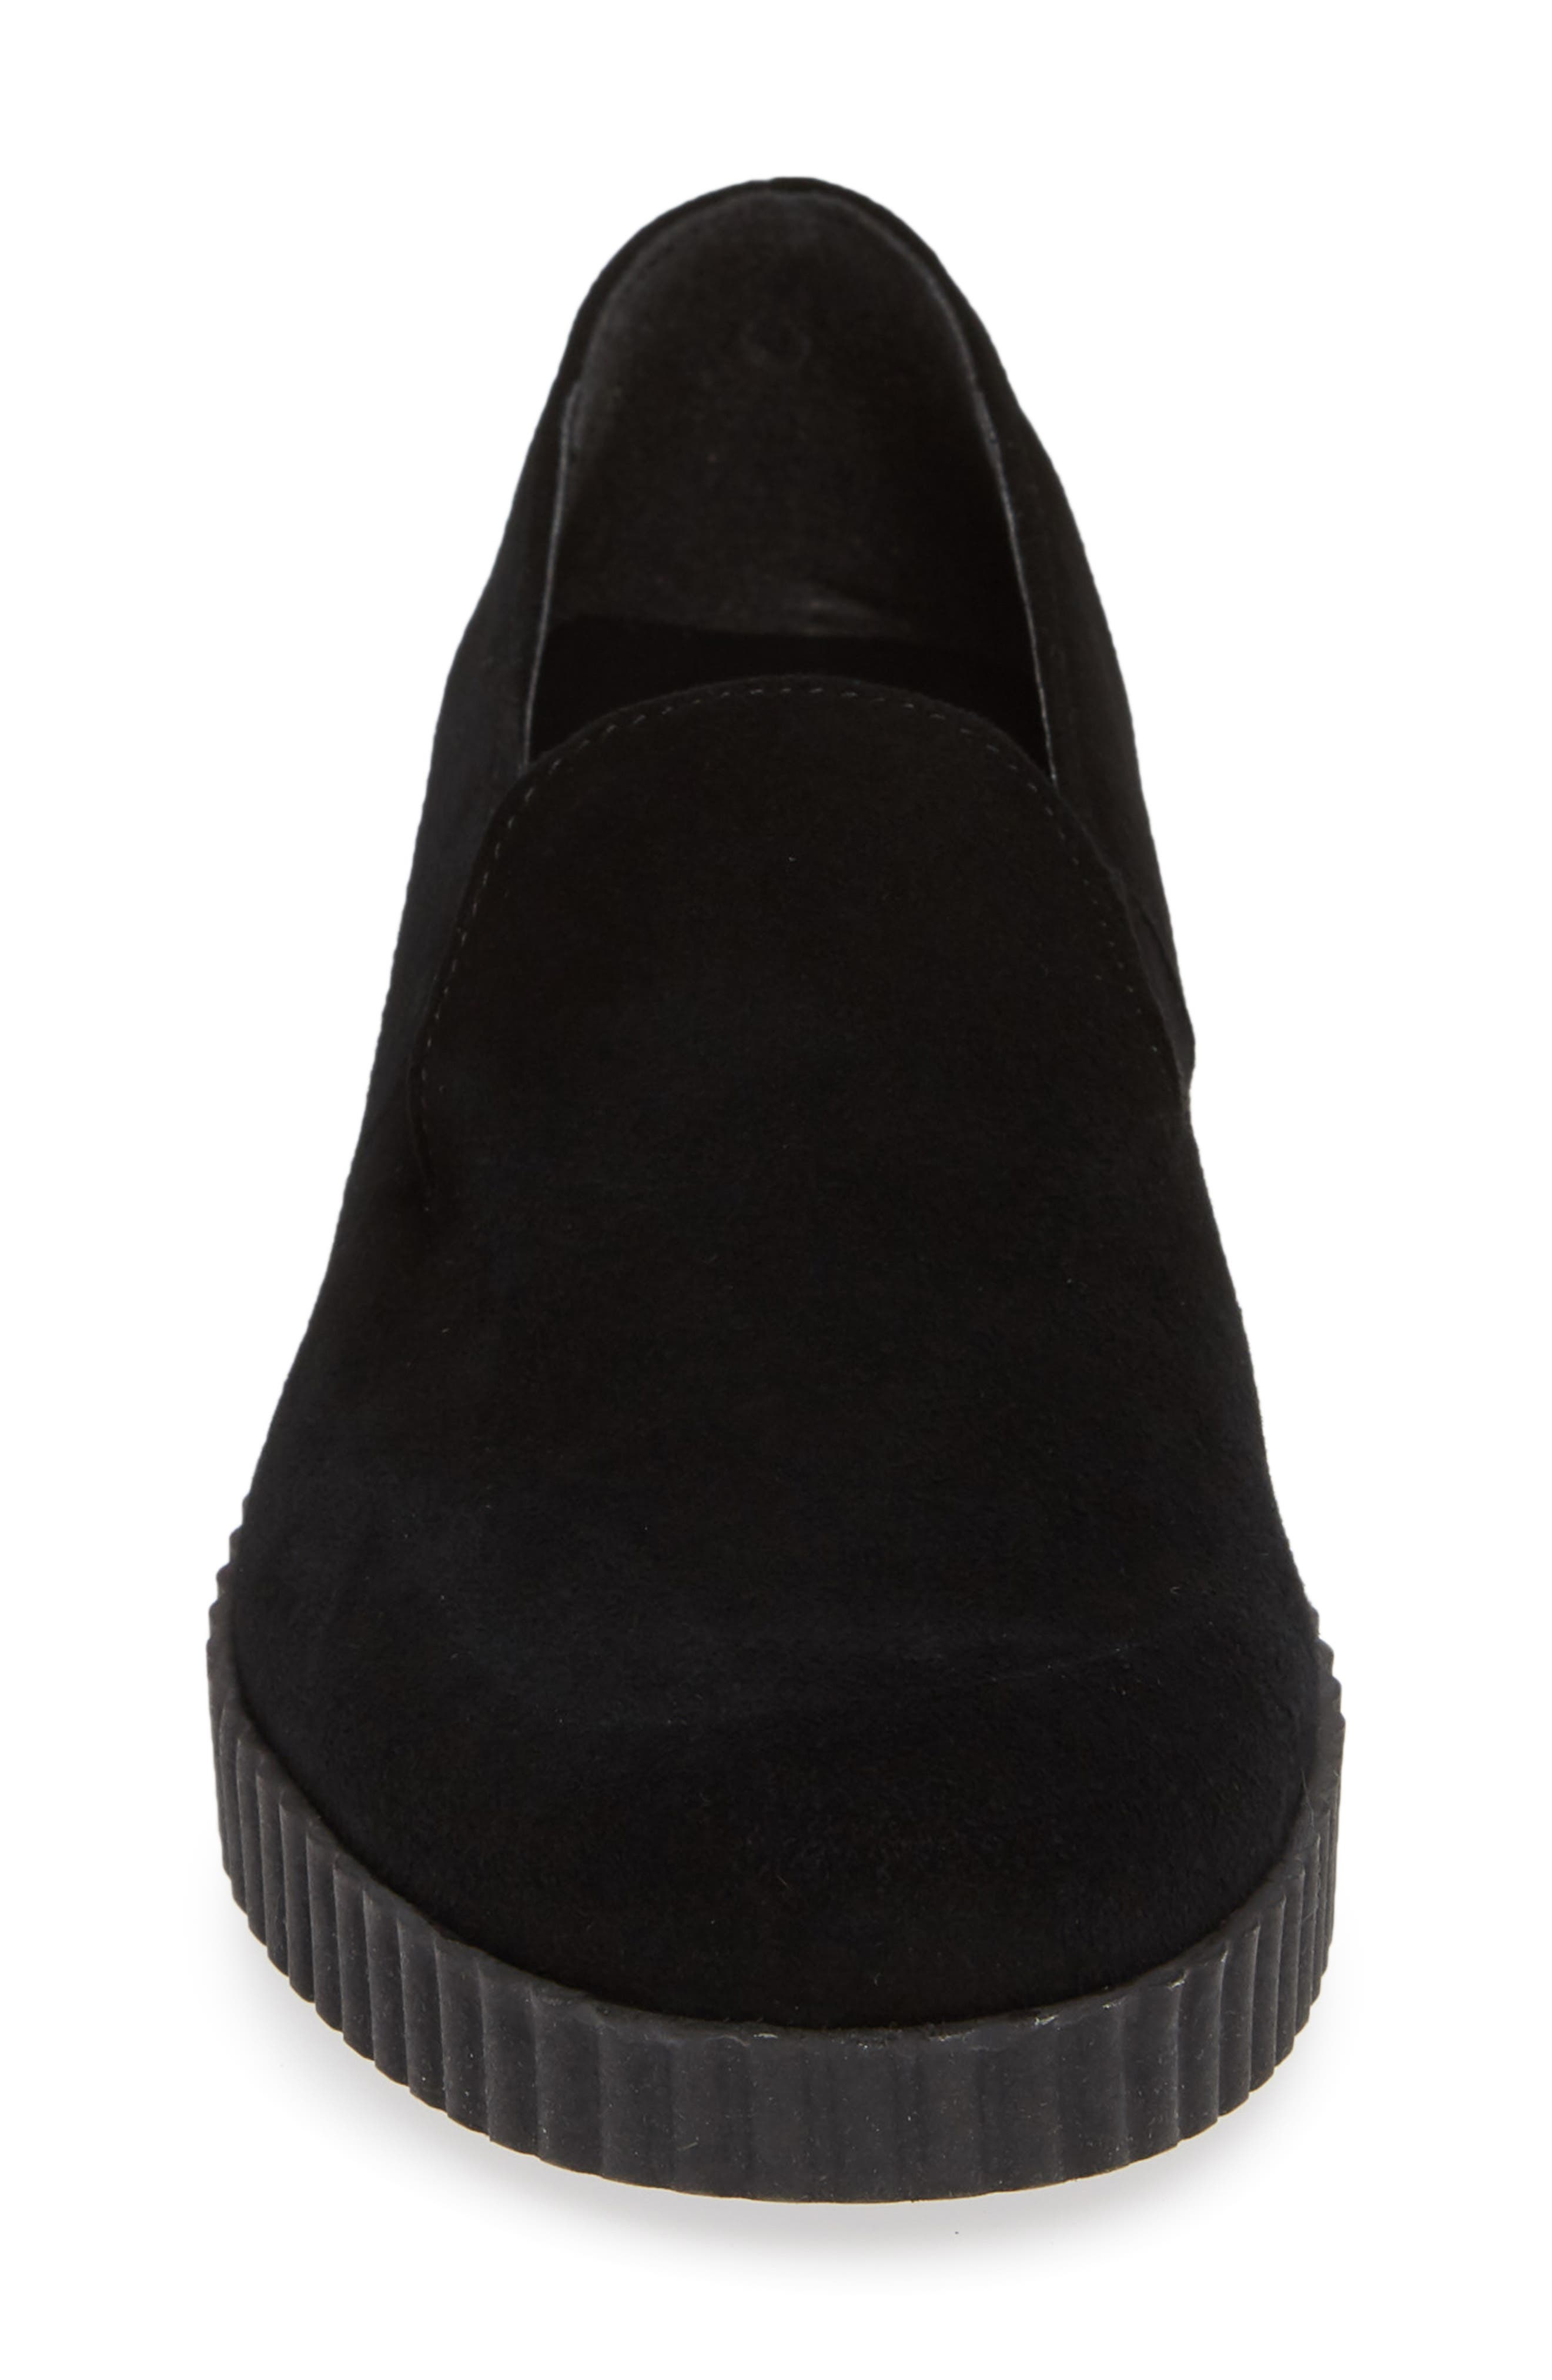 Fast Times Loafer,                             Alternate thumbnail 4, color,                             BLACK SUEDE